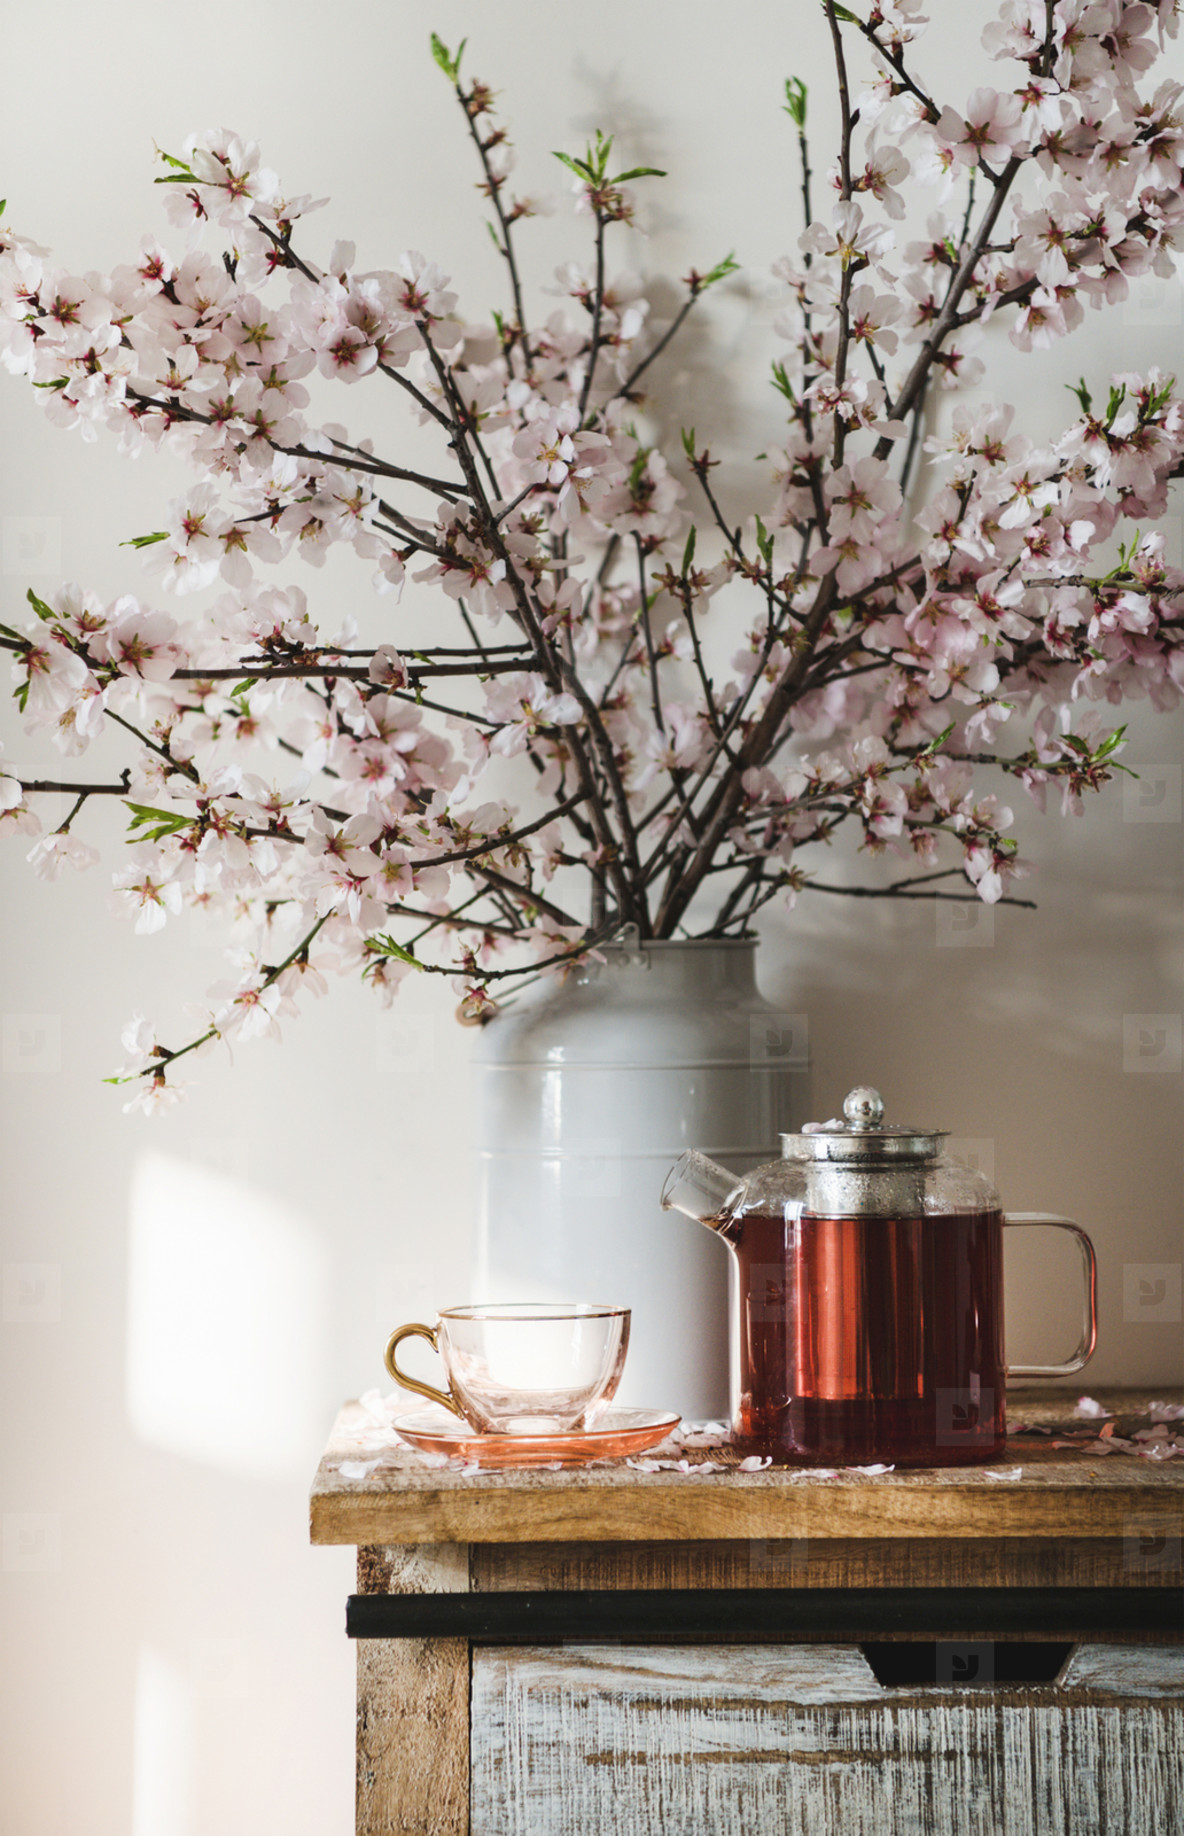 Black tea on wooden cupboard under blooming almond tree branches